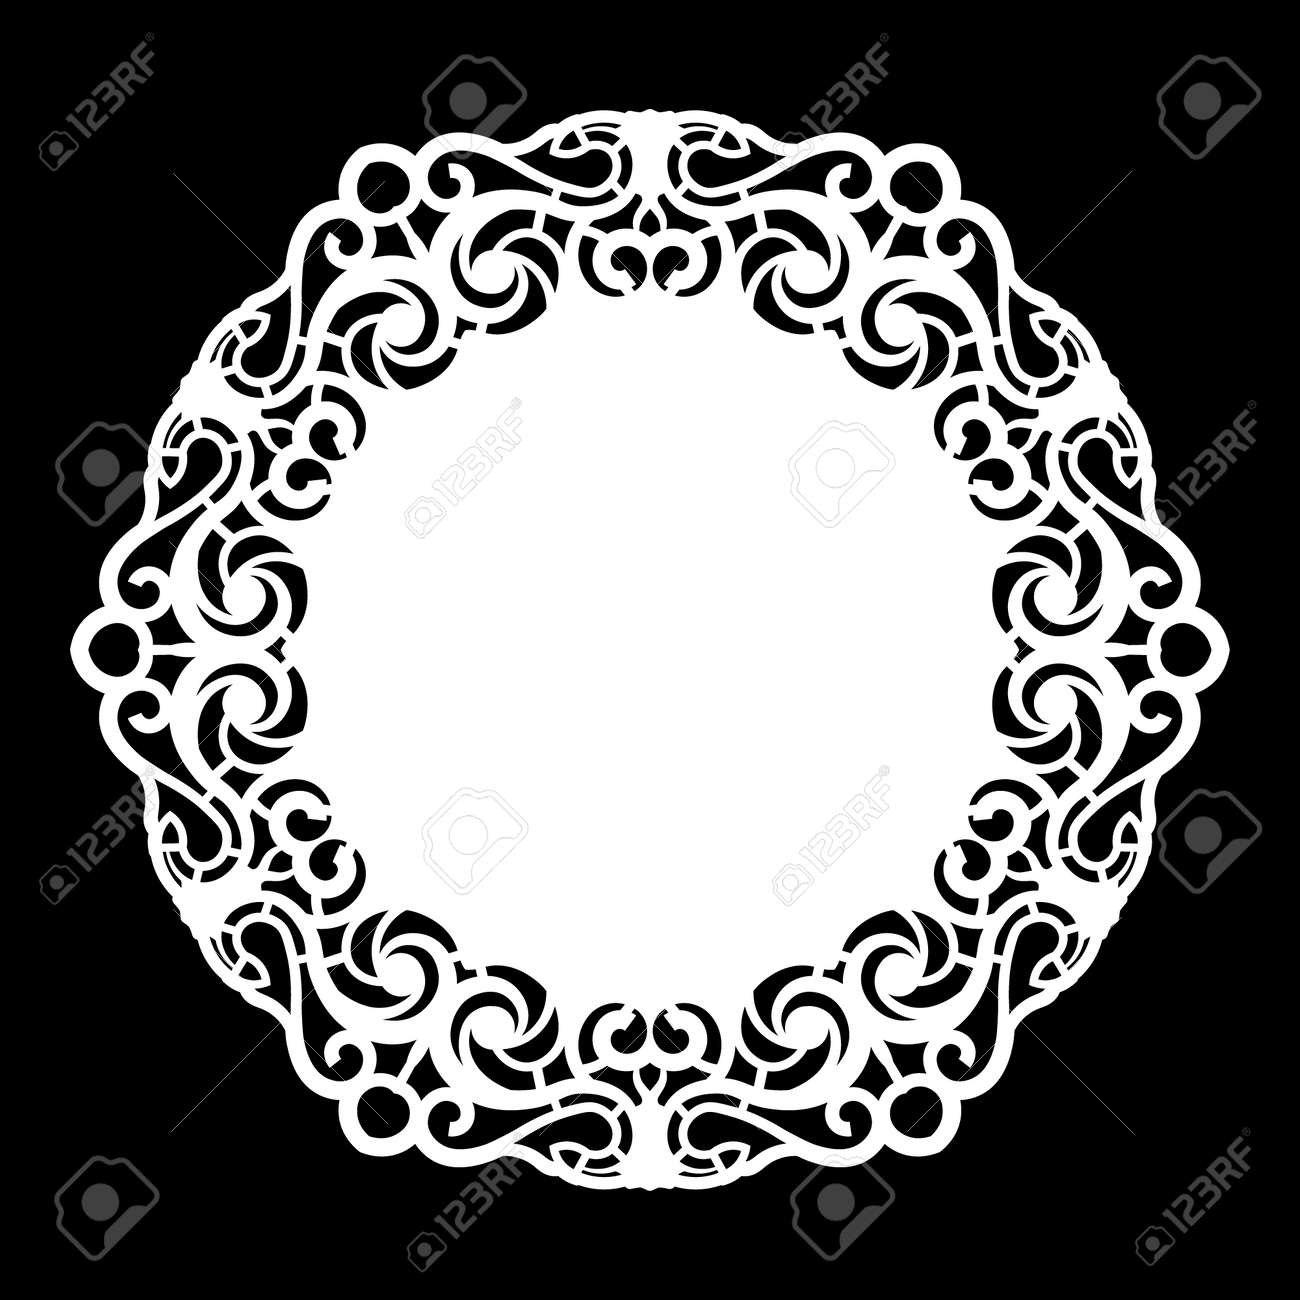 lace round paper doily lacy snowflake greeting element template rh 123rf com lace patterns free to download a vector vector lace pattern photoshop